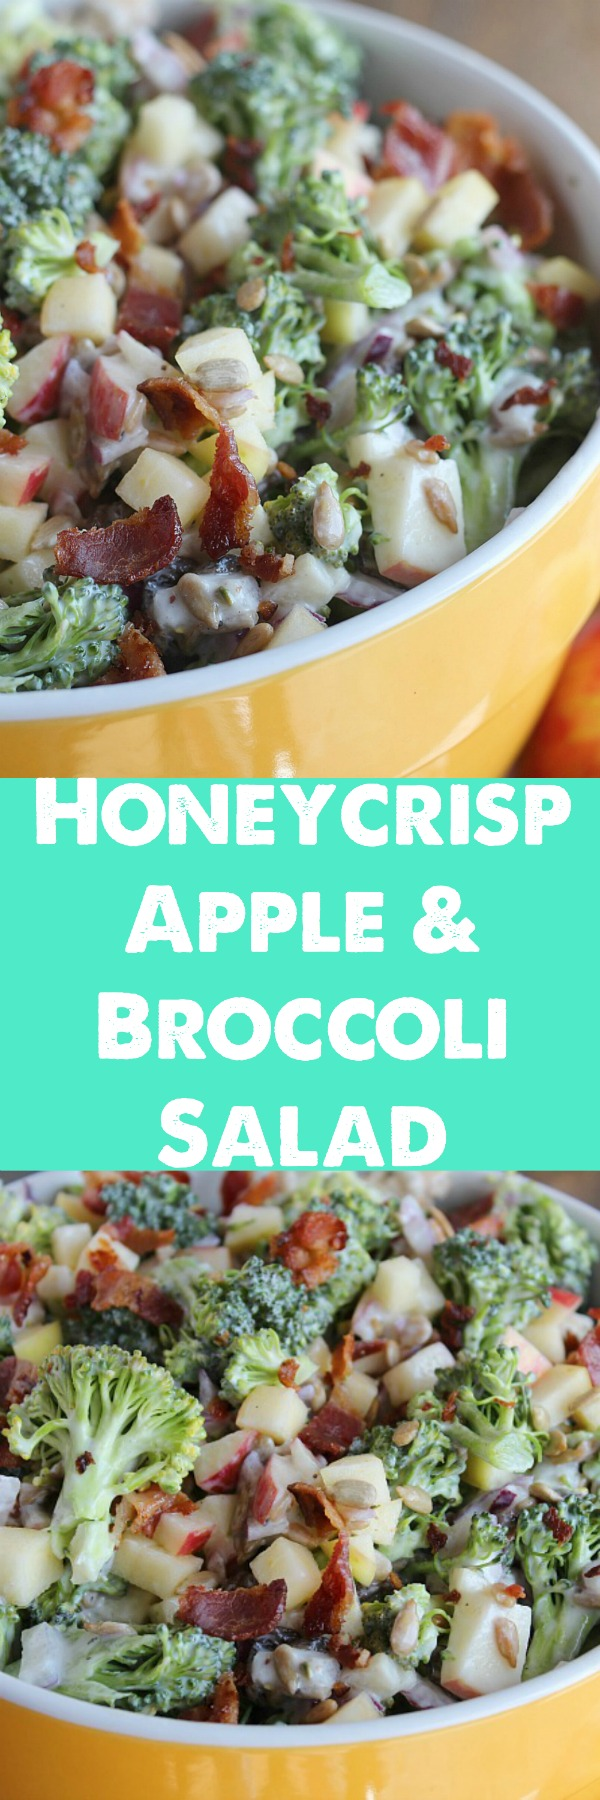 A summer classic...with a twist! Honeycrisp Apple & Broccoli Salad. Perfect for your next cookout! via @DashOfEvans #MiApples